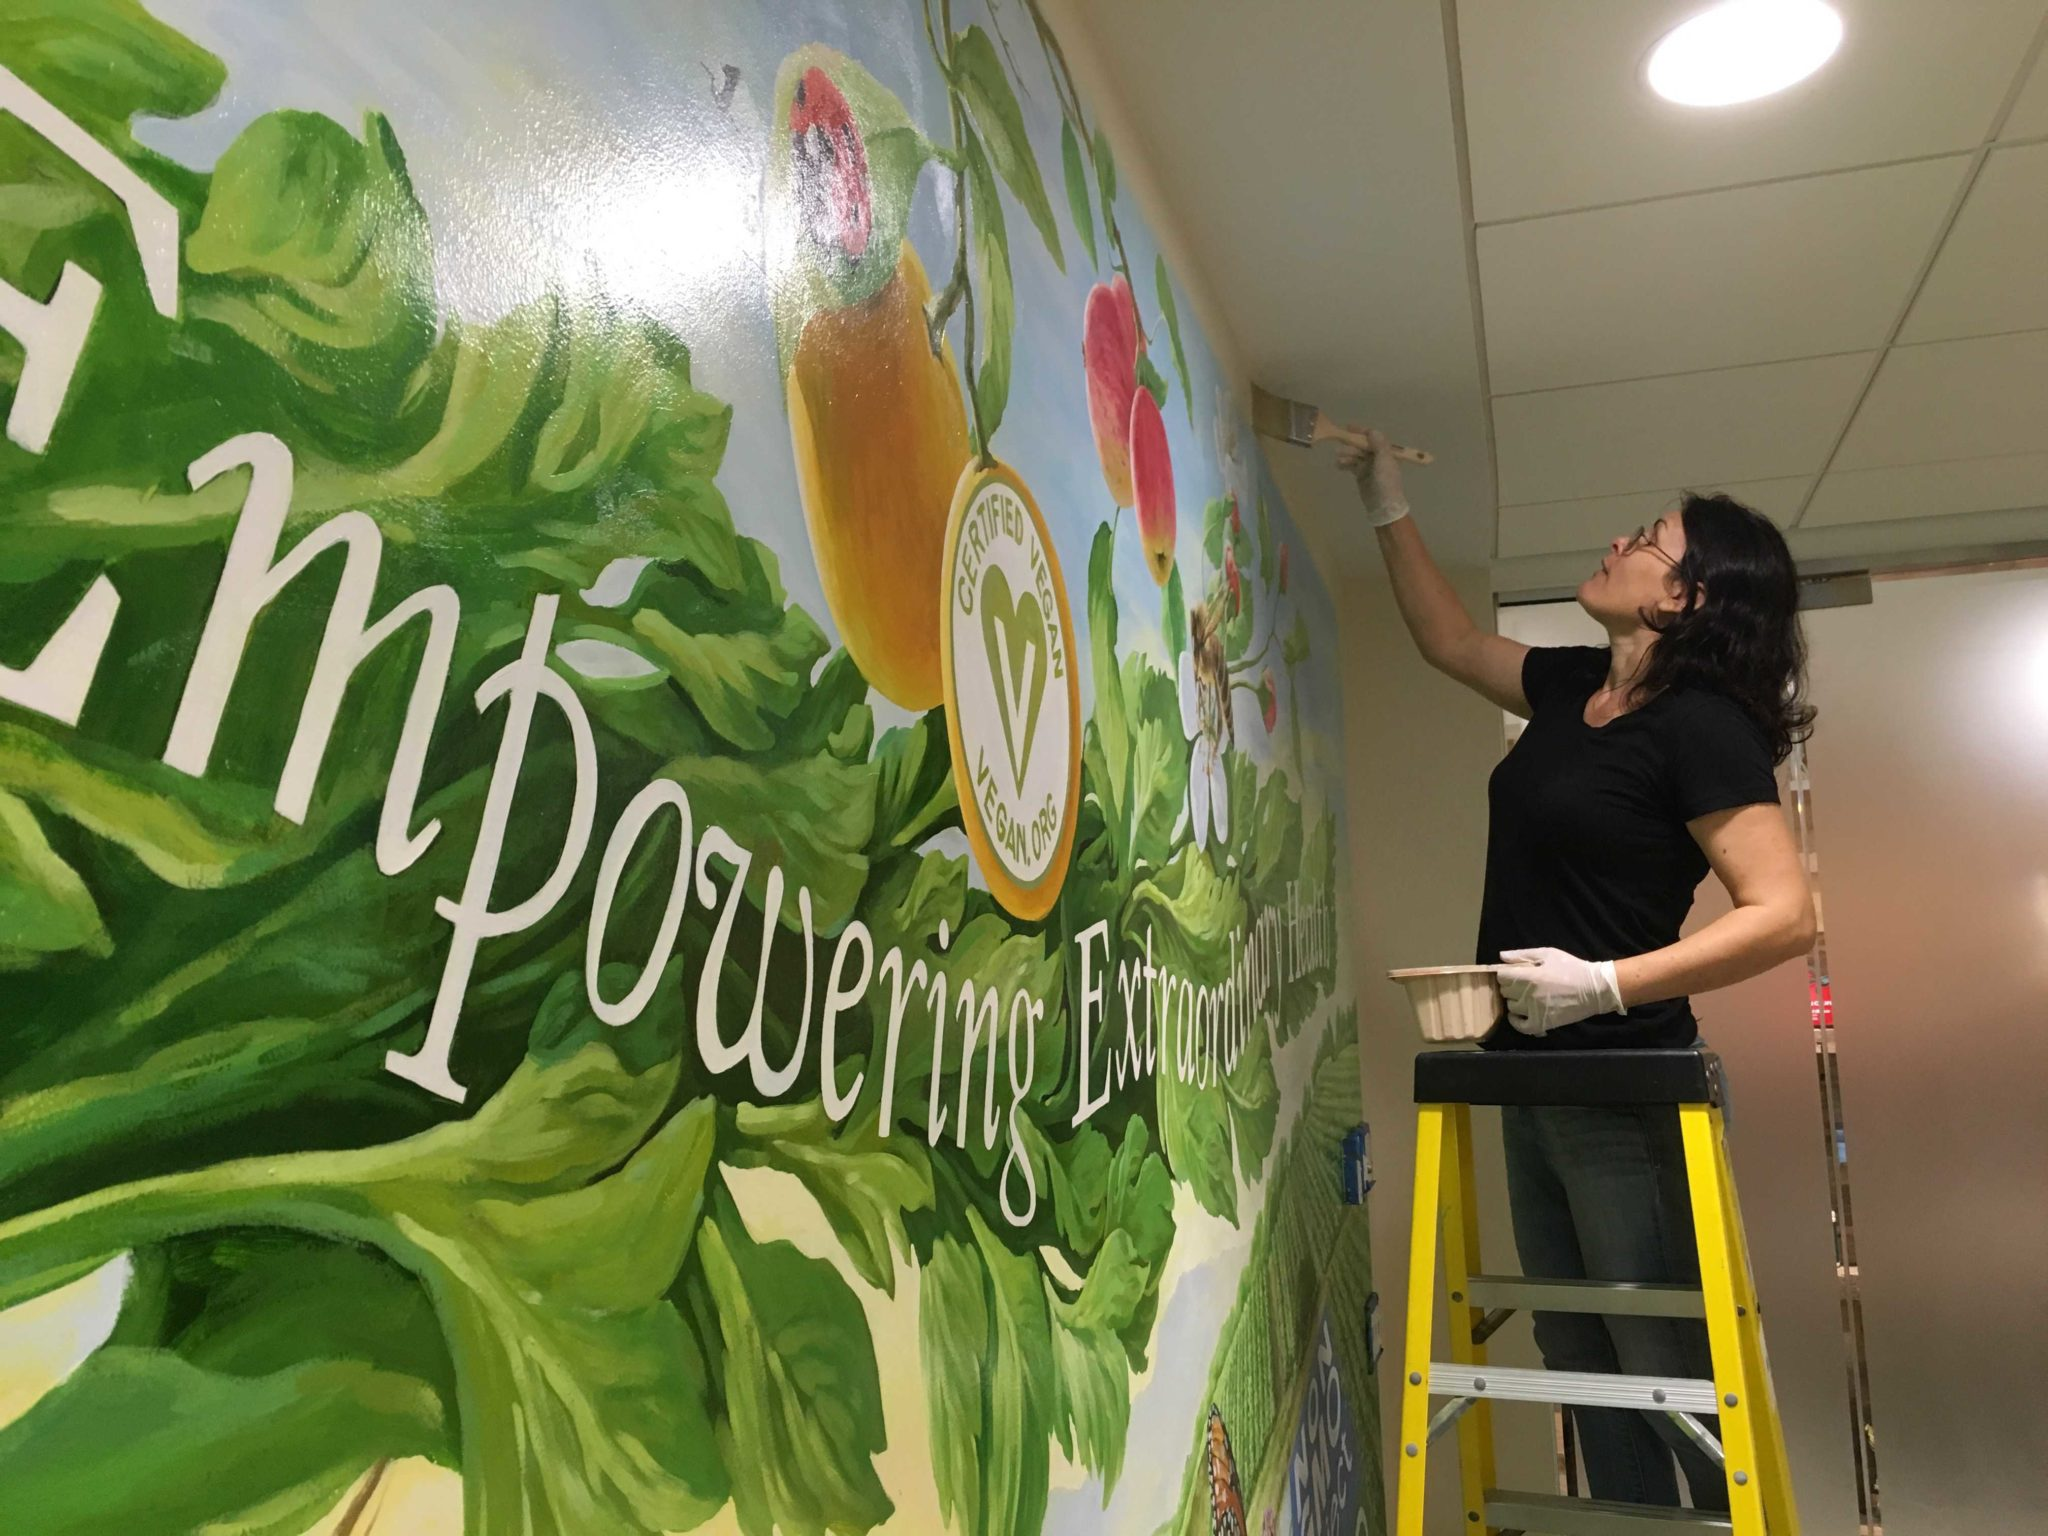 South florida mural artist varnishing commercial mural for Commercial mural painting